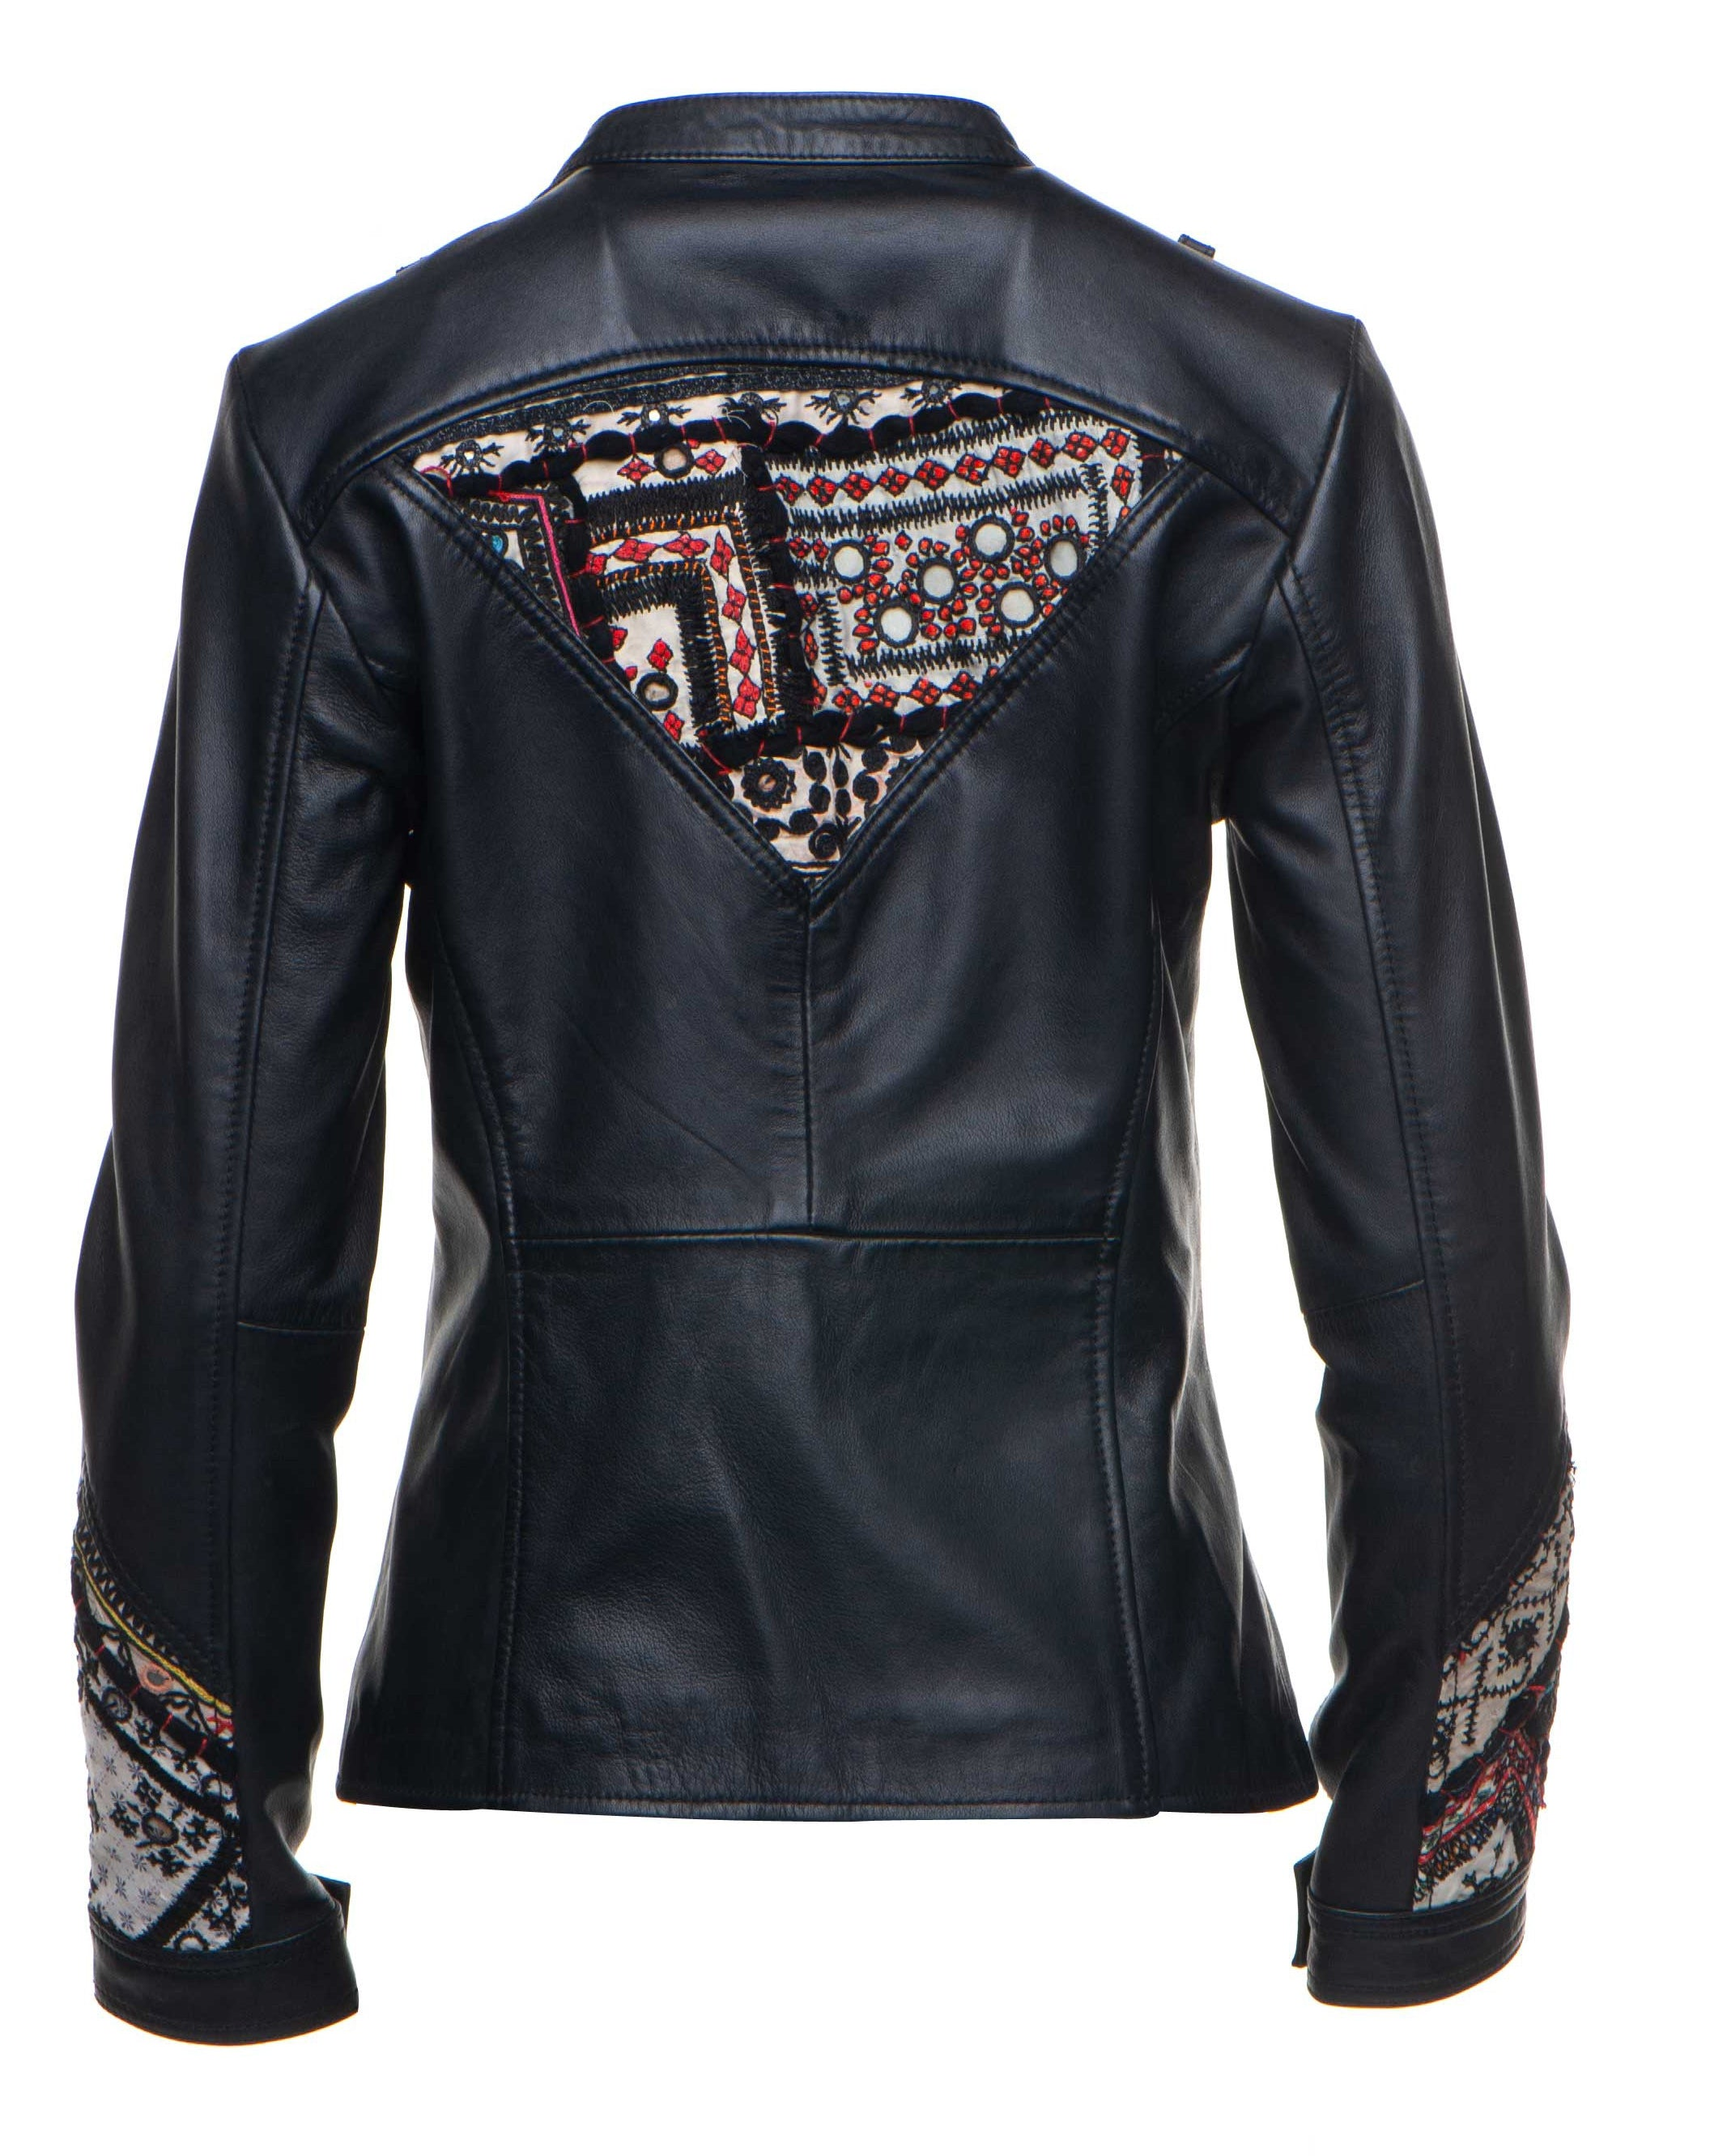 Delilah's bohemian chic leather jacket with tribal hand embroidered fabric